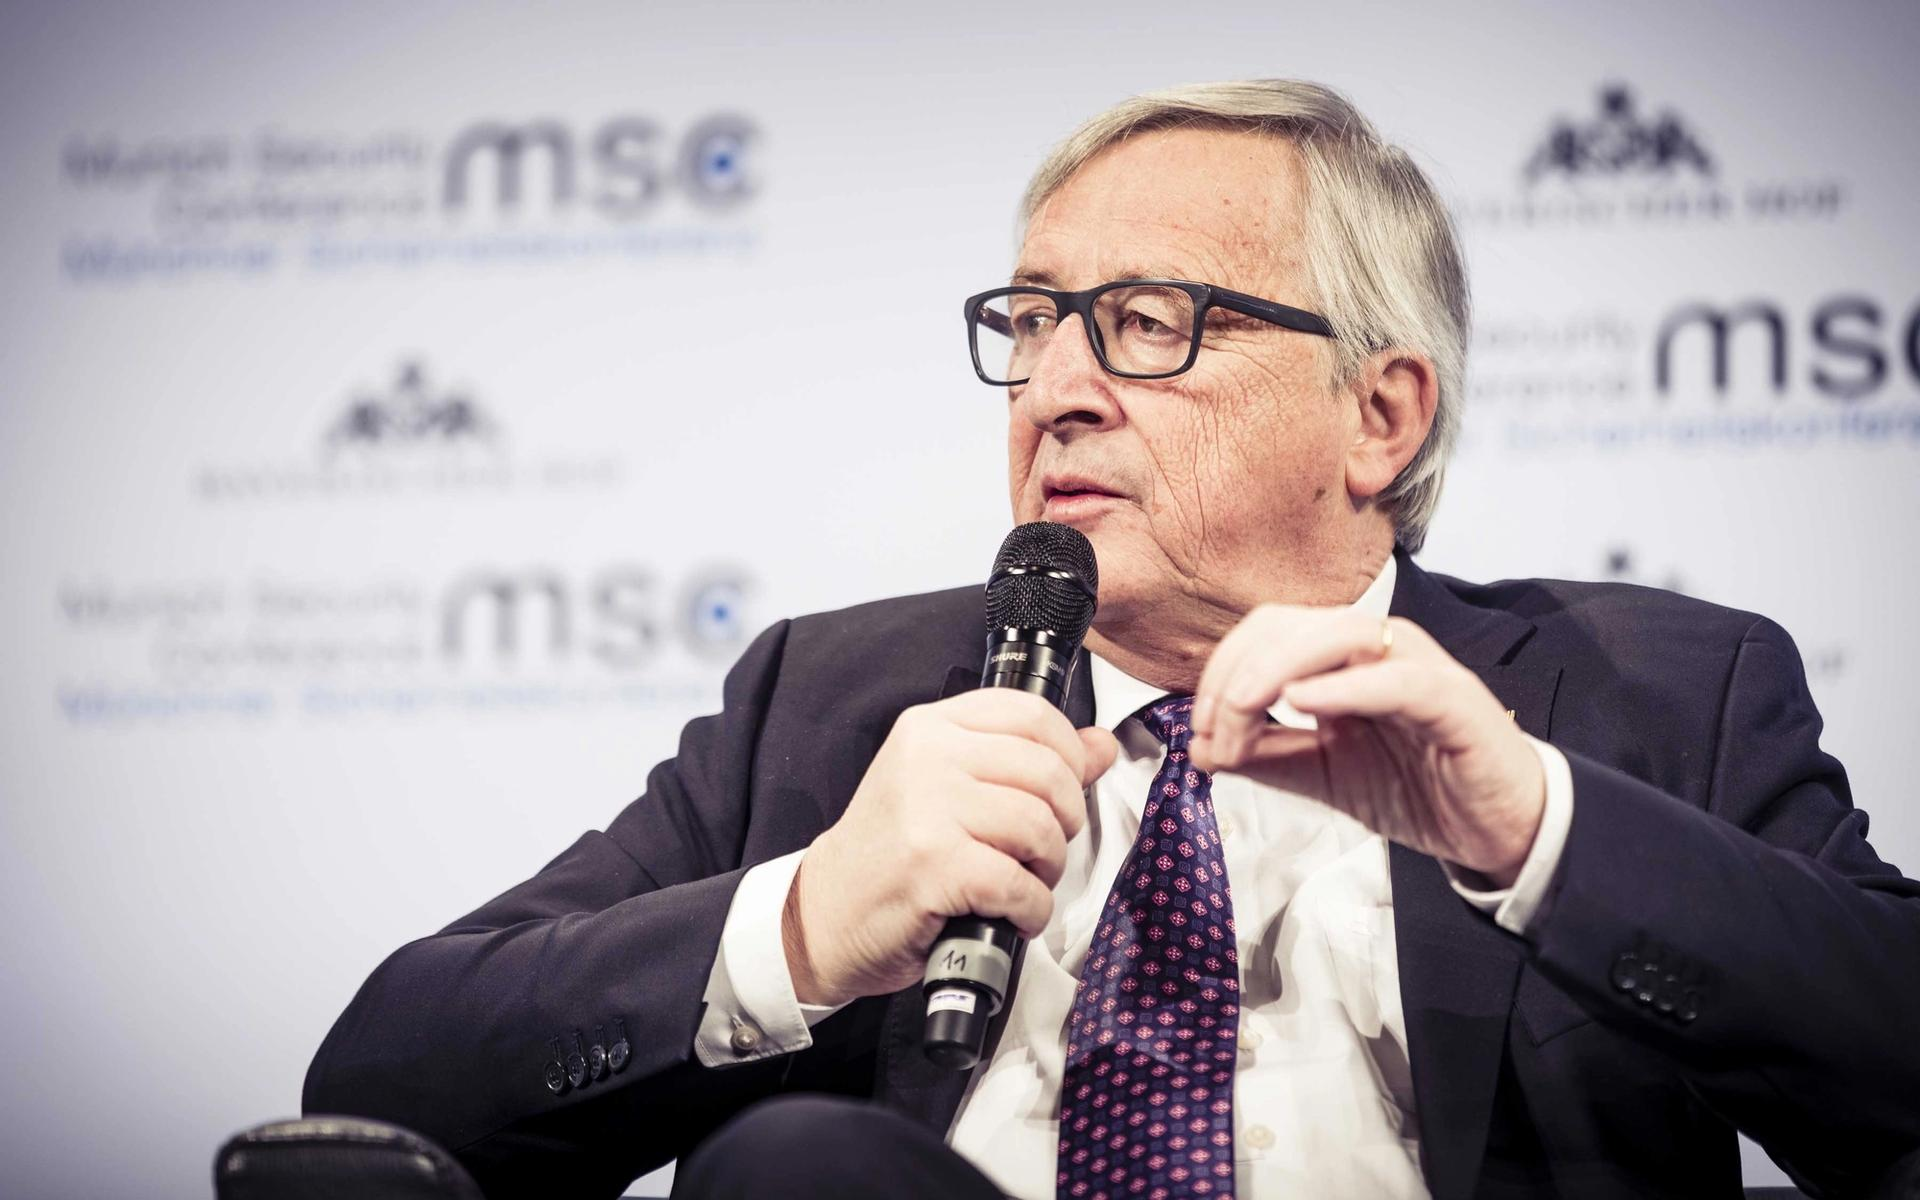 Jean-Claude Juncker speaking at the Munich Security Conference in 2018 © MSC/Kuhlmann